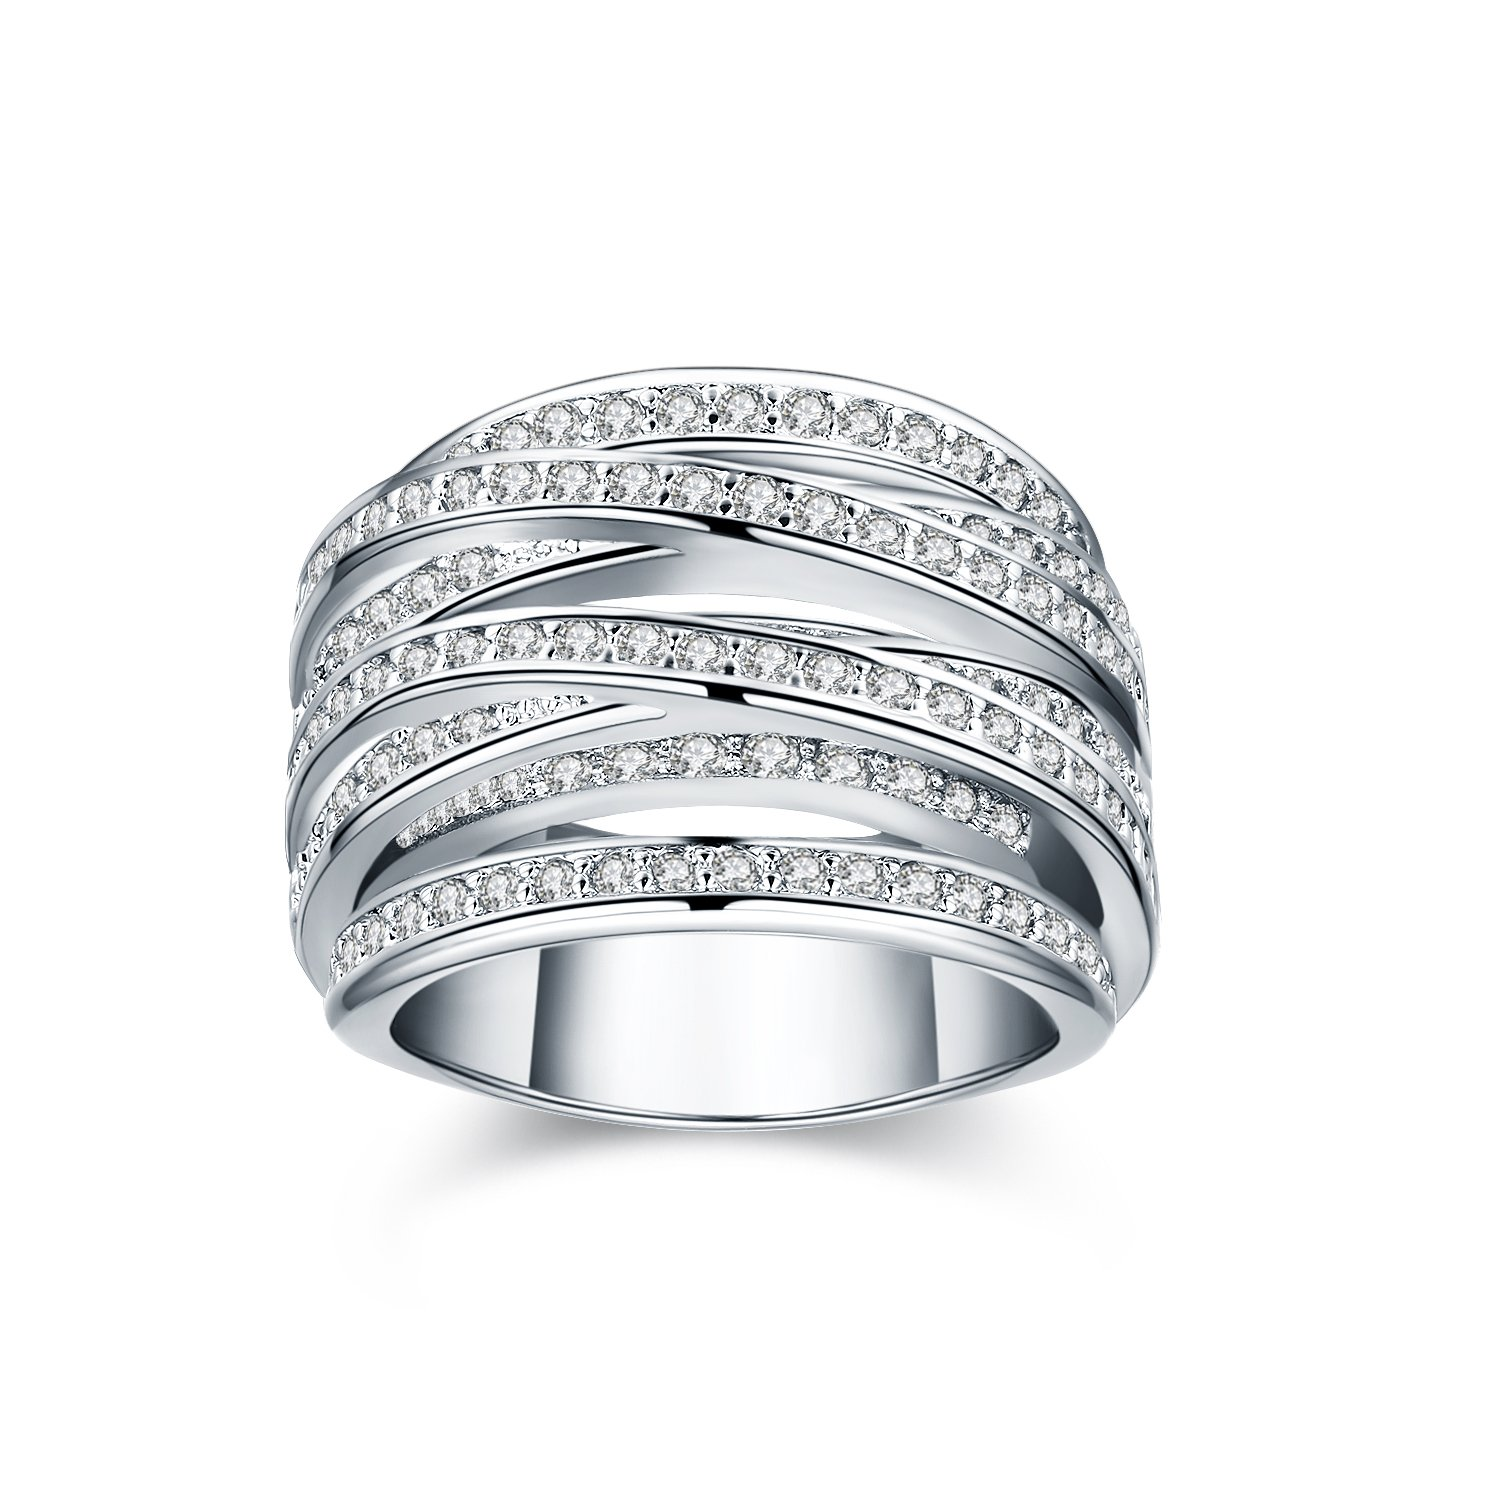 Platinum/Yellow Gold-Plated Spiral Ring with Zirconia Crystal Pave